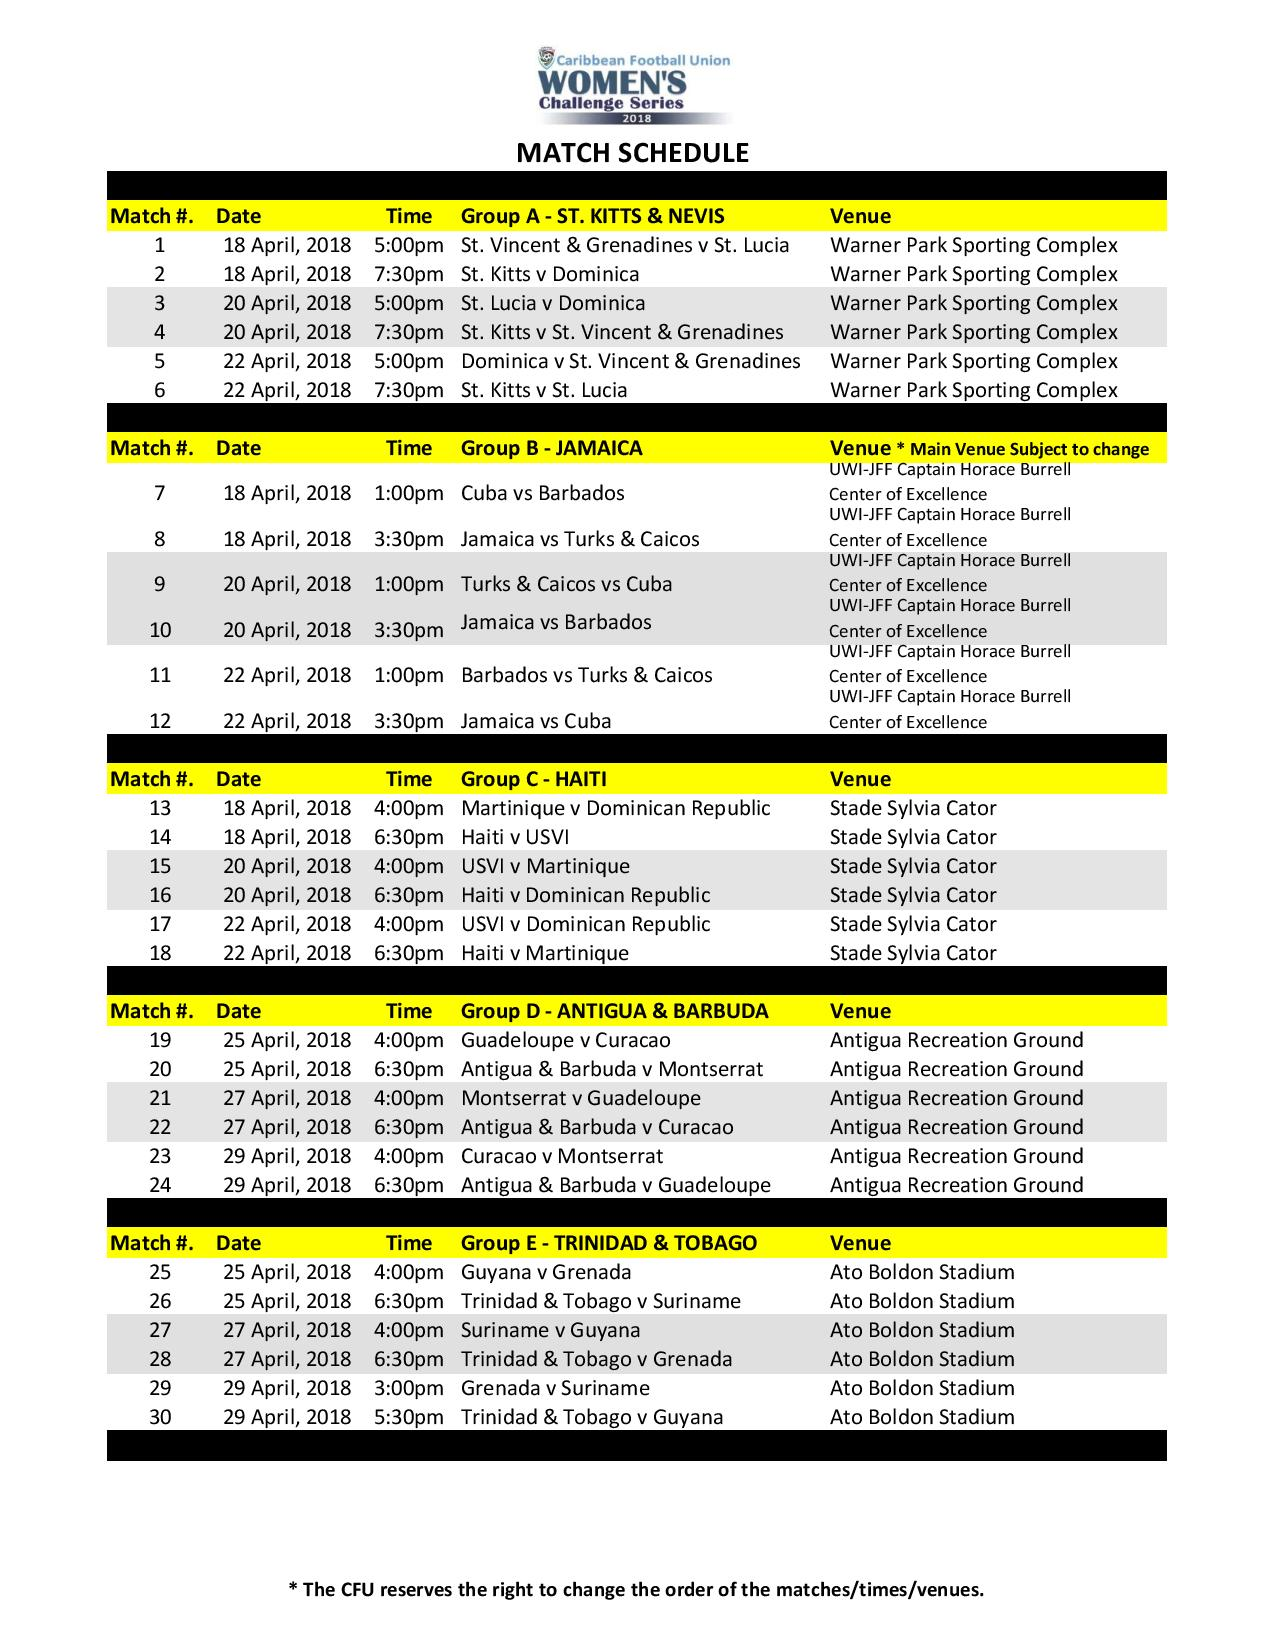 2018 CFU Women's Challenge Series Match Schedule